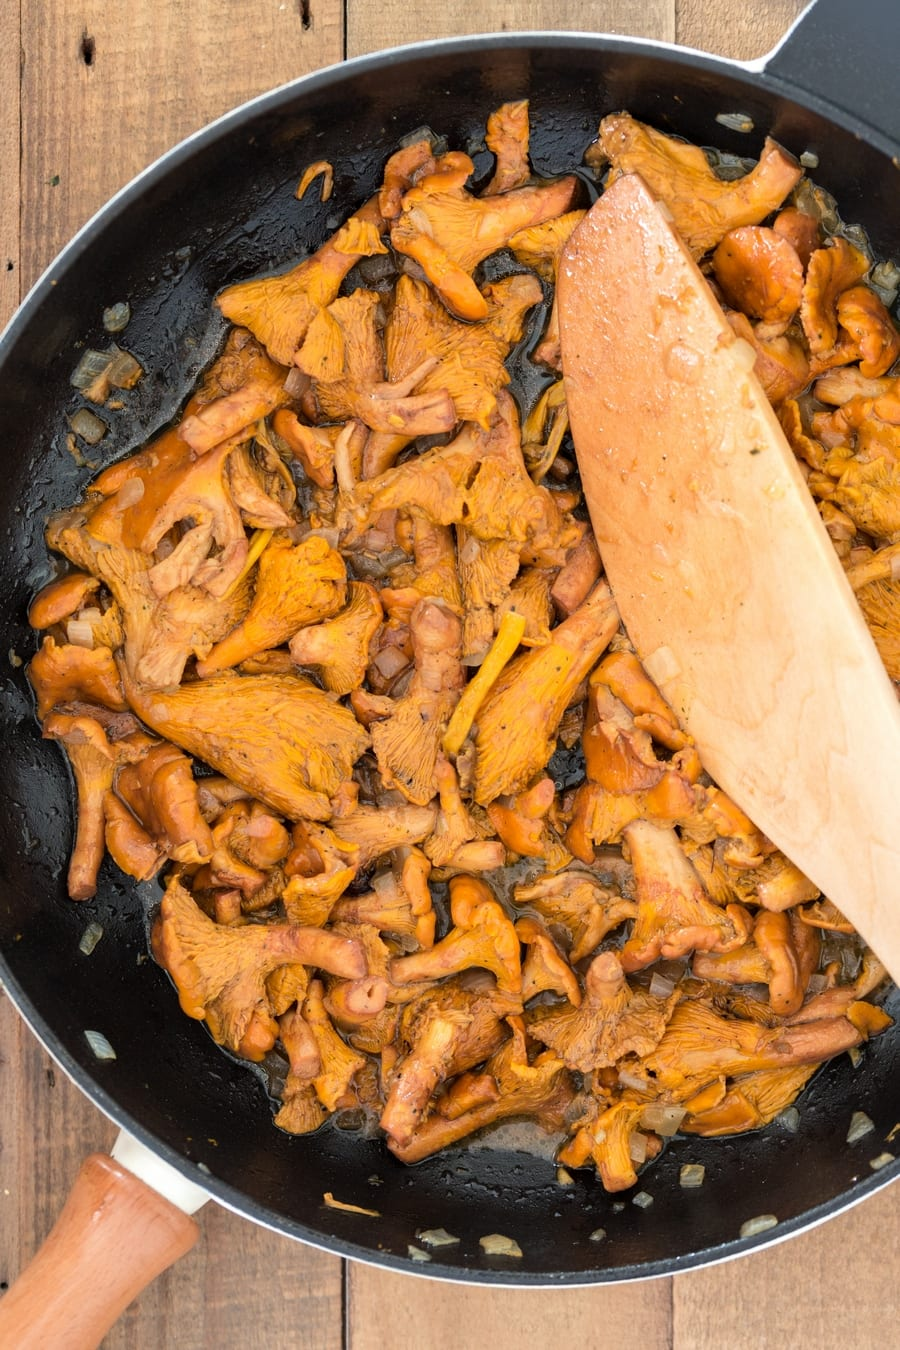 Chanterelles cooked with butter and onion in a skillet.